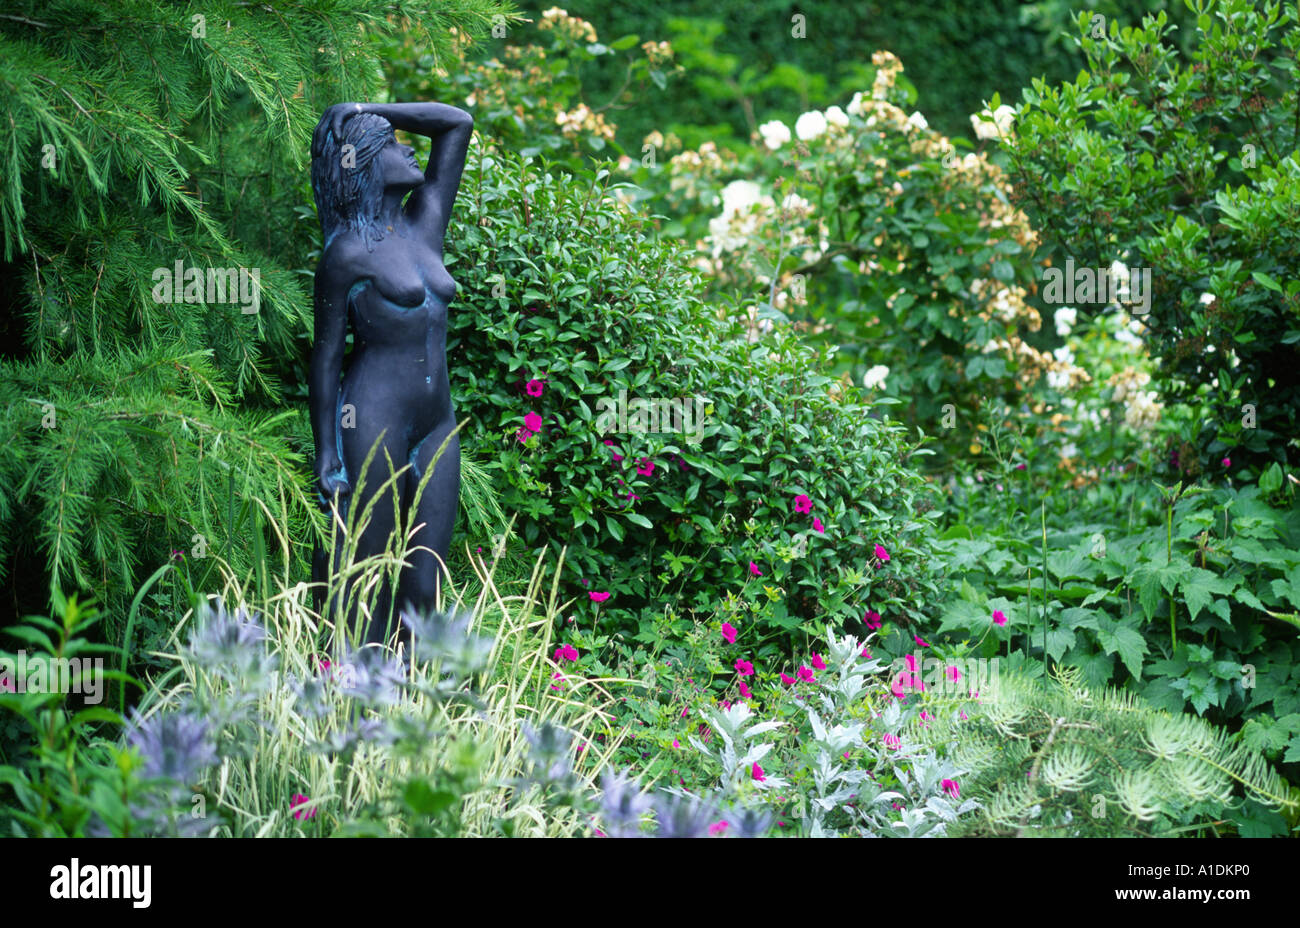 Stock Photo   Garden Statue Bronze Garden Statue Of A Naked Lady In A Bed  Of Willowherb